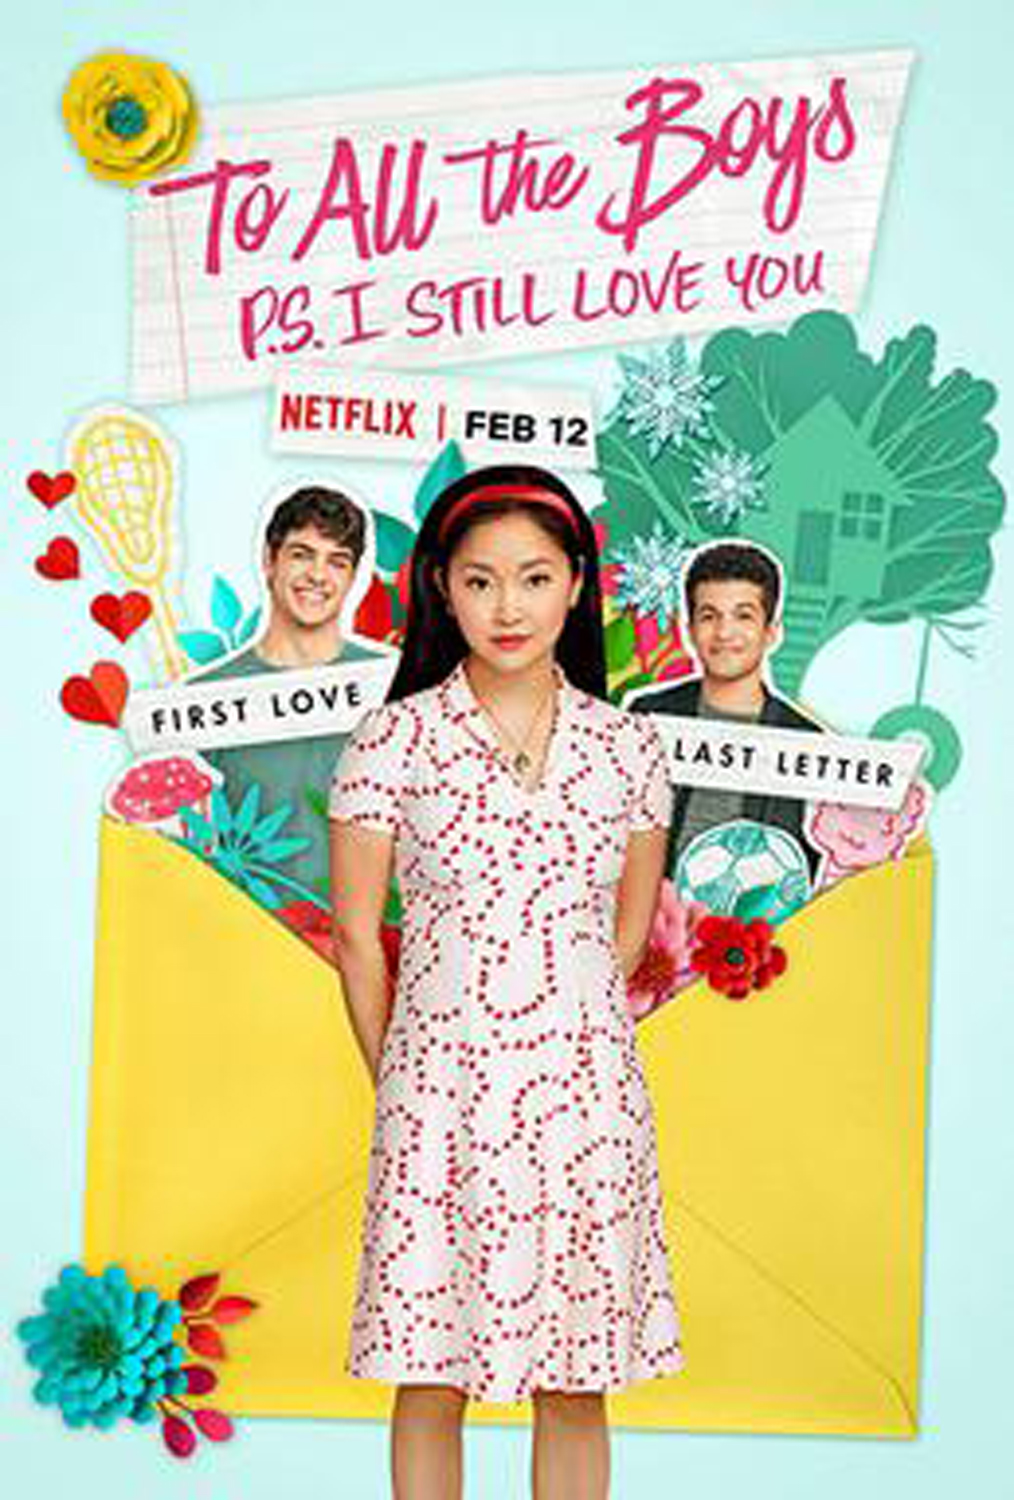 """To All The Boys I Loved Before: P.S. I Still Love You"" release poster."